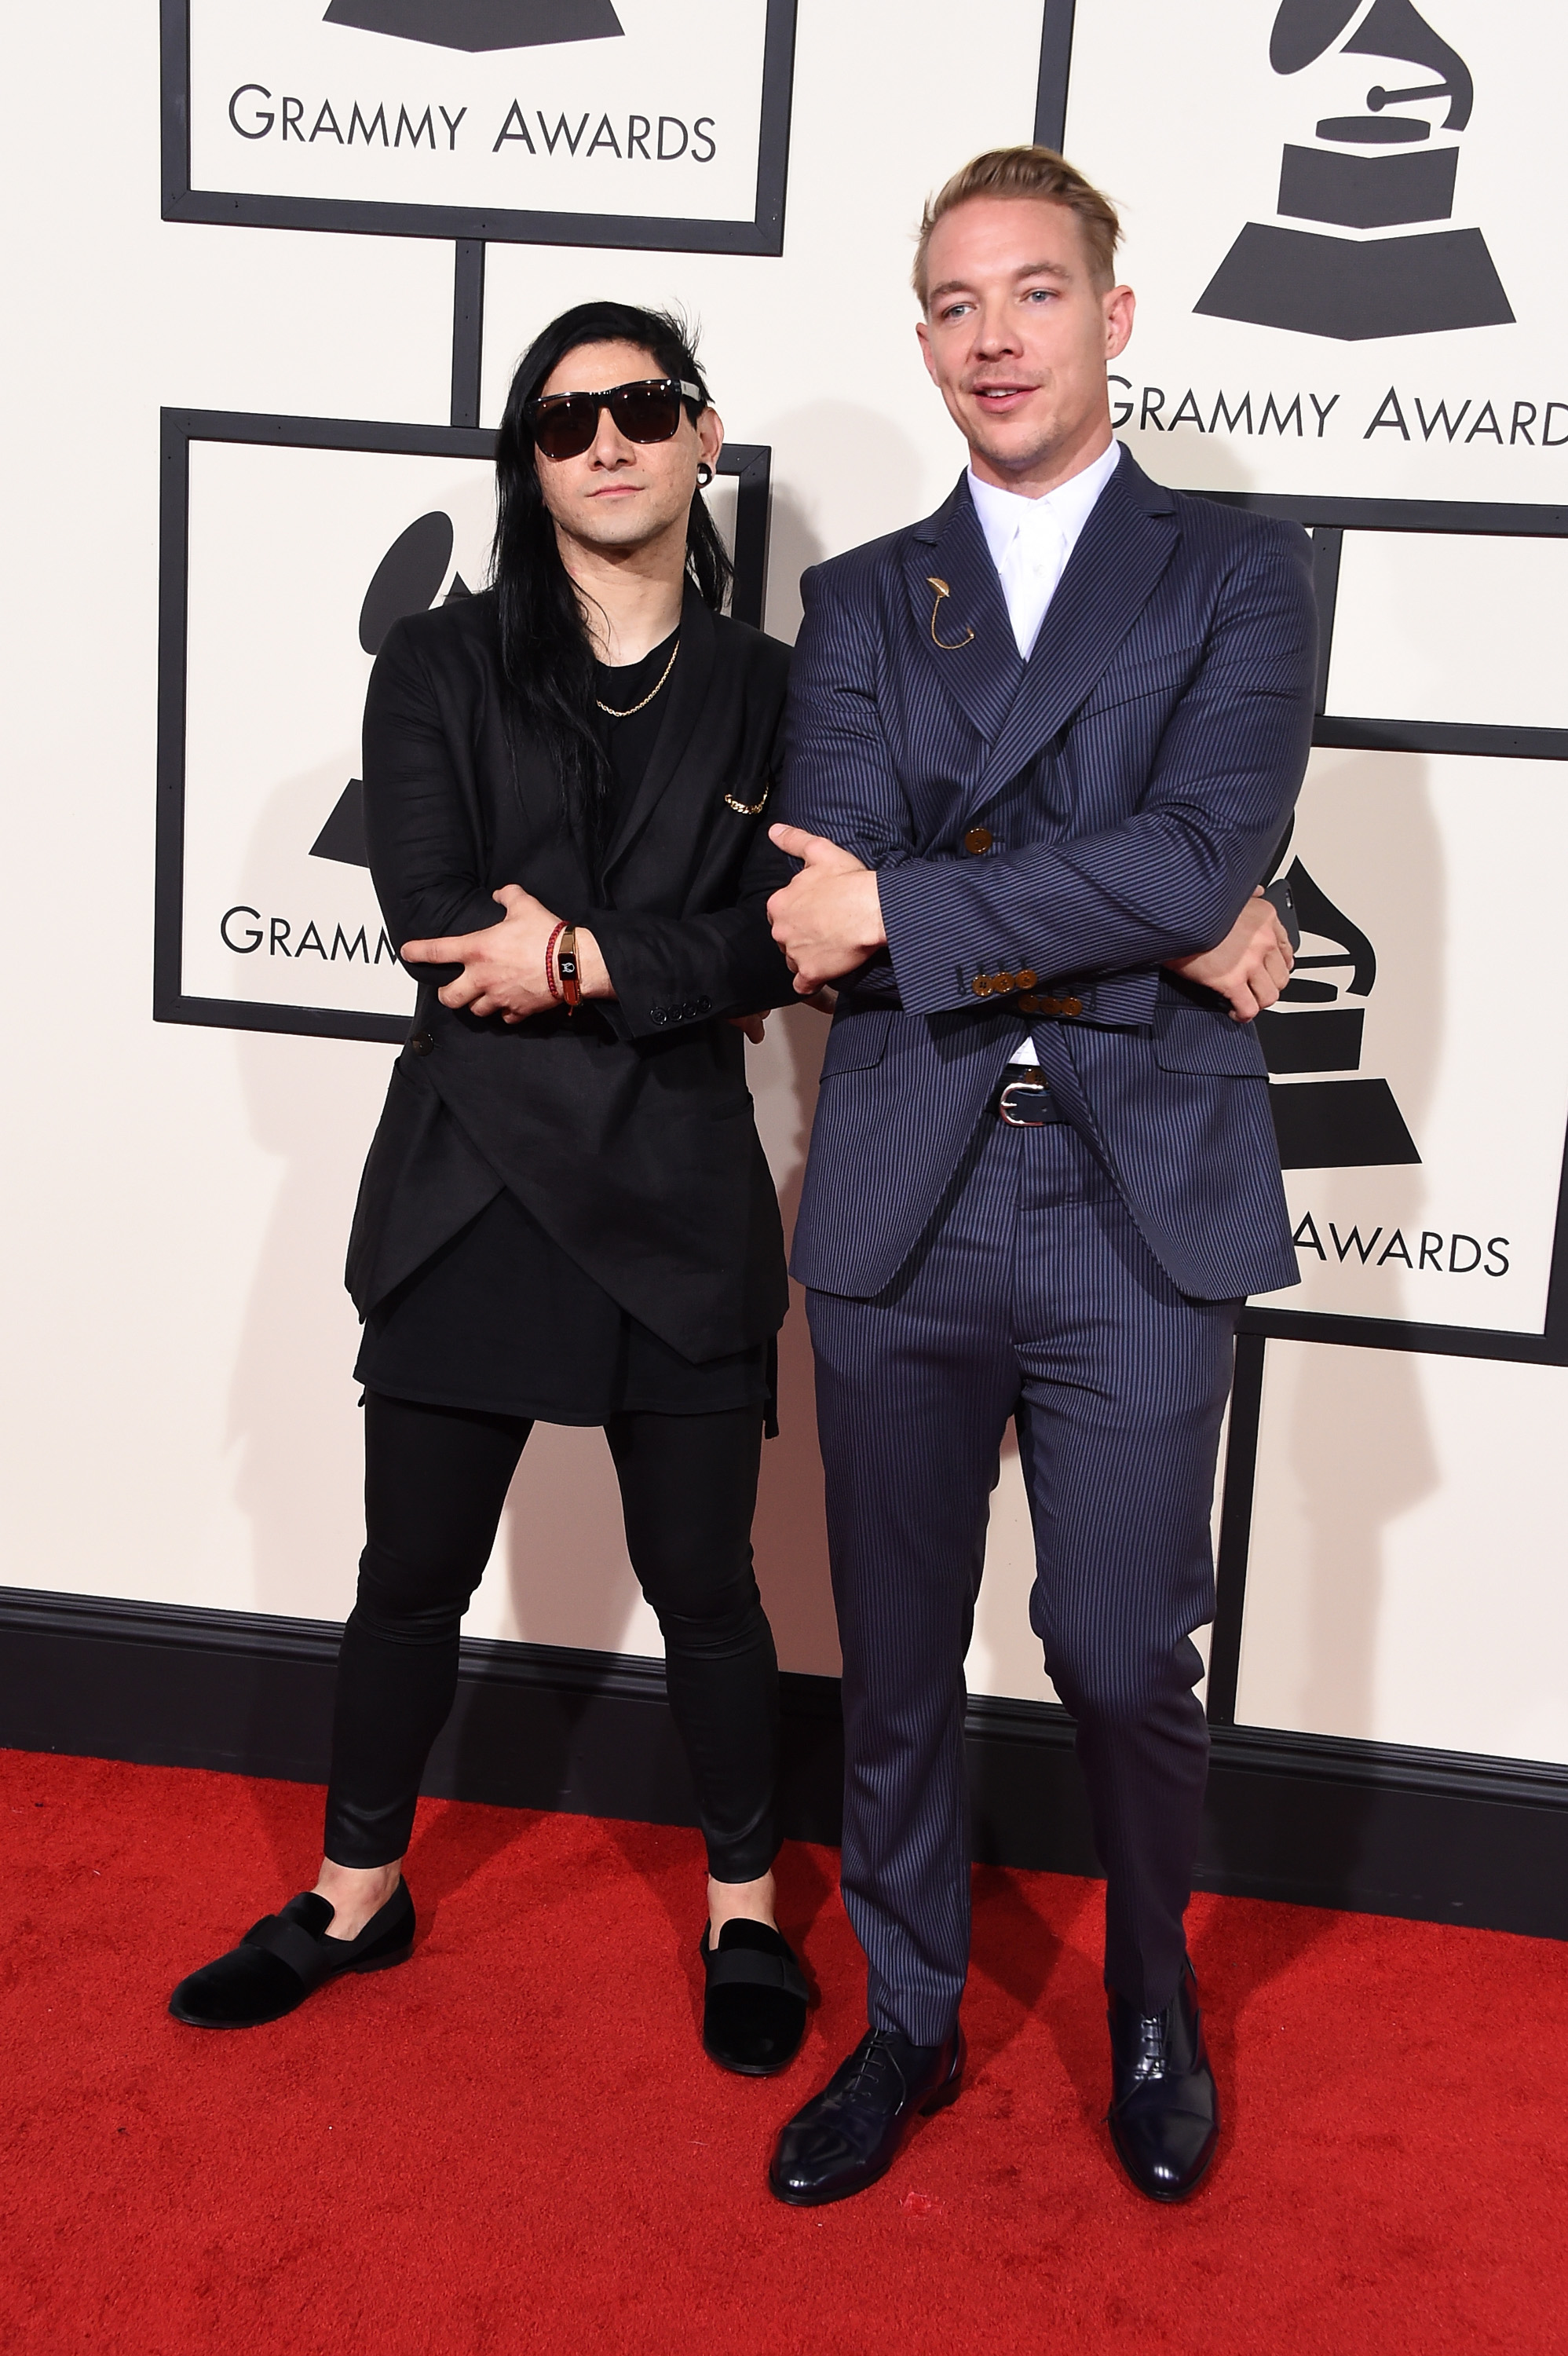 Skrillex, left, and Diplo, right, attend the 58th GRAMMY Awards at Staples Center on Feb. 15, 2016 in Los Angeles.